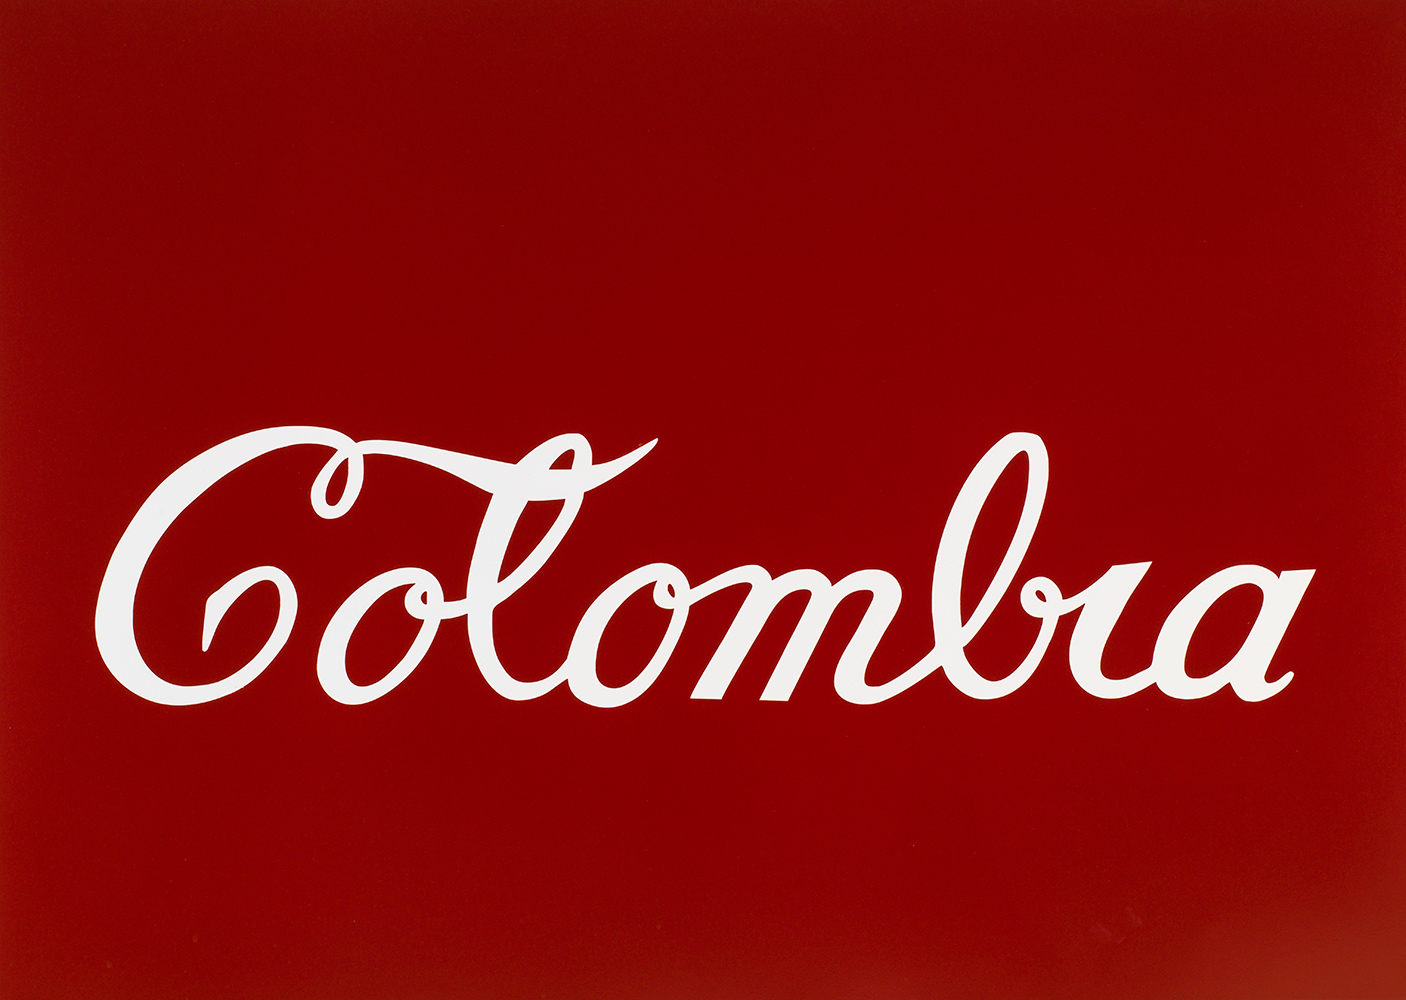 Colombia cocacola